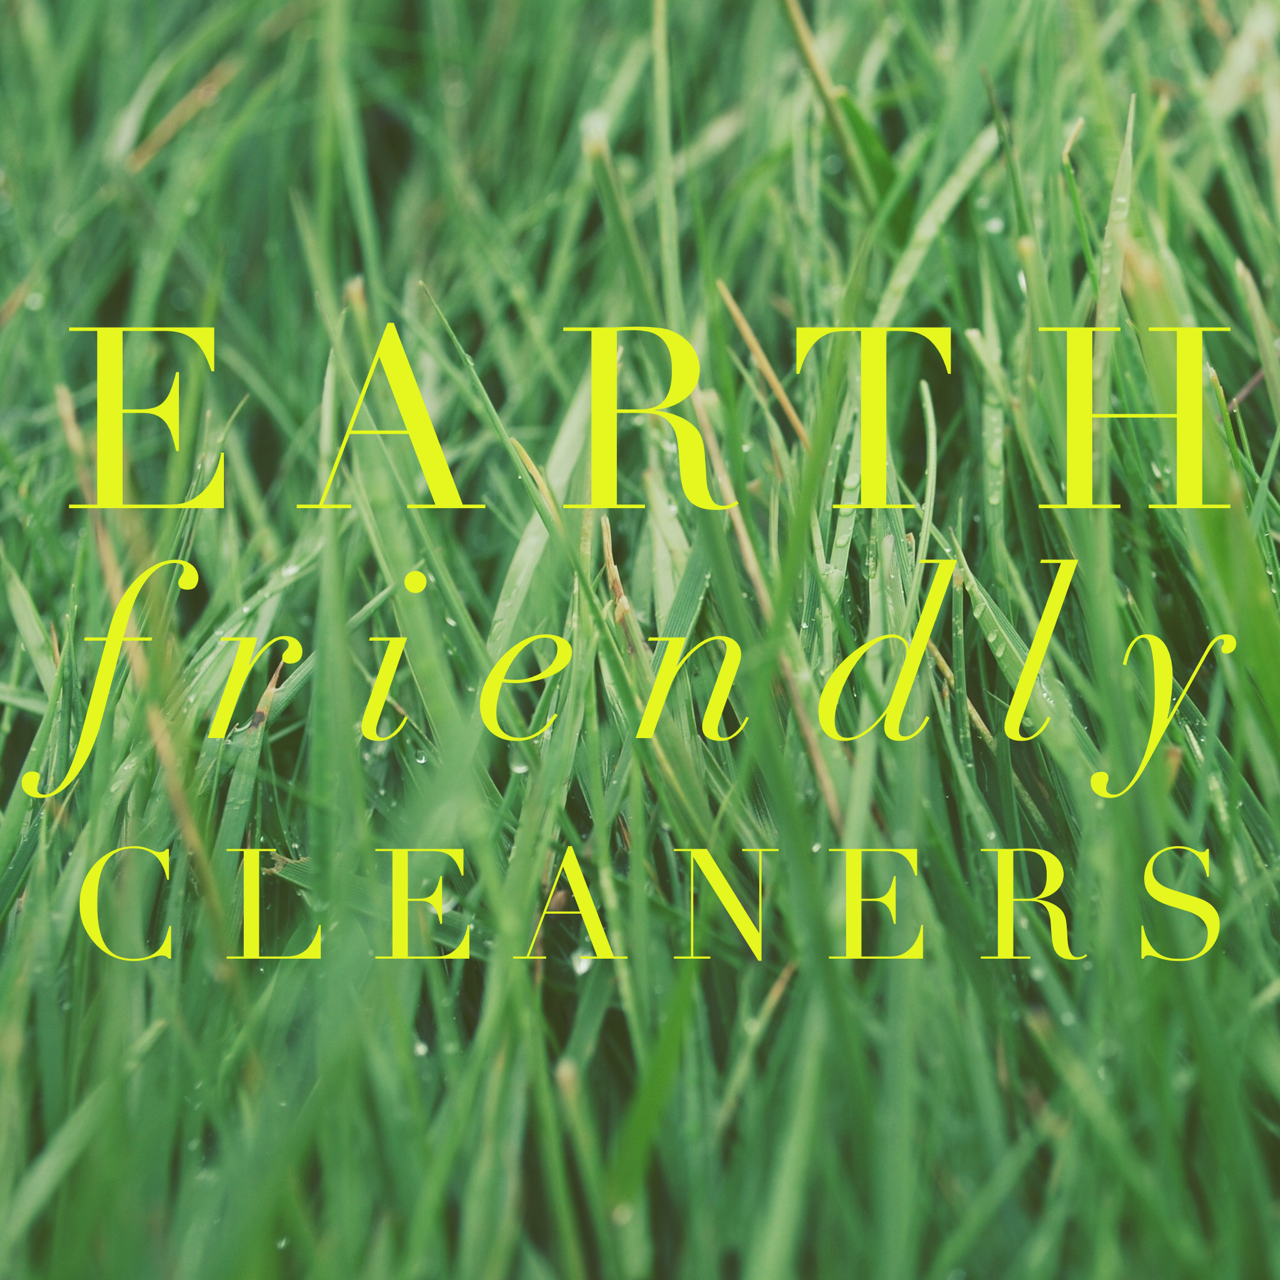 Earth Friendly Cleaners